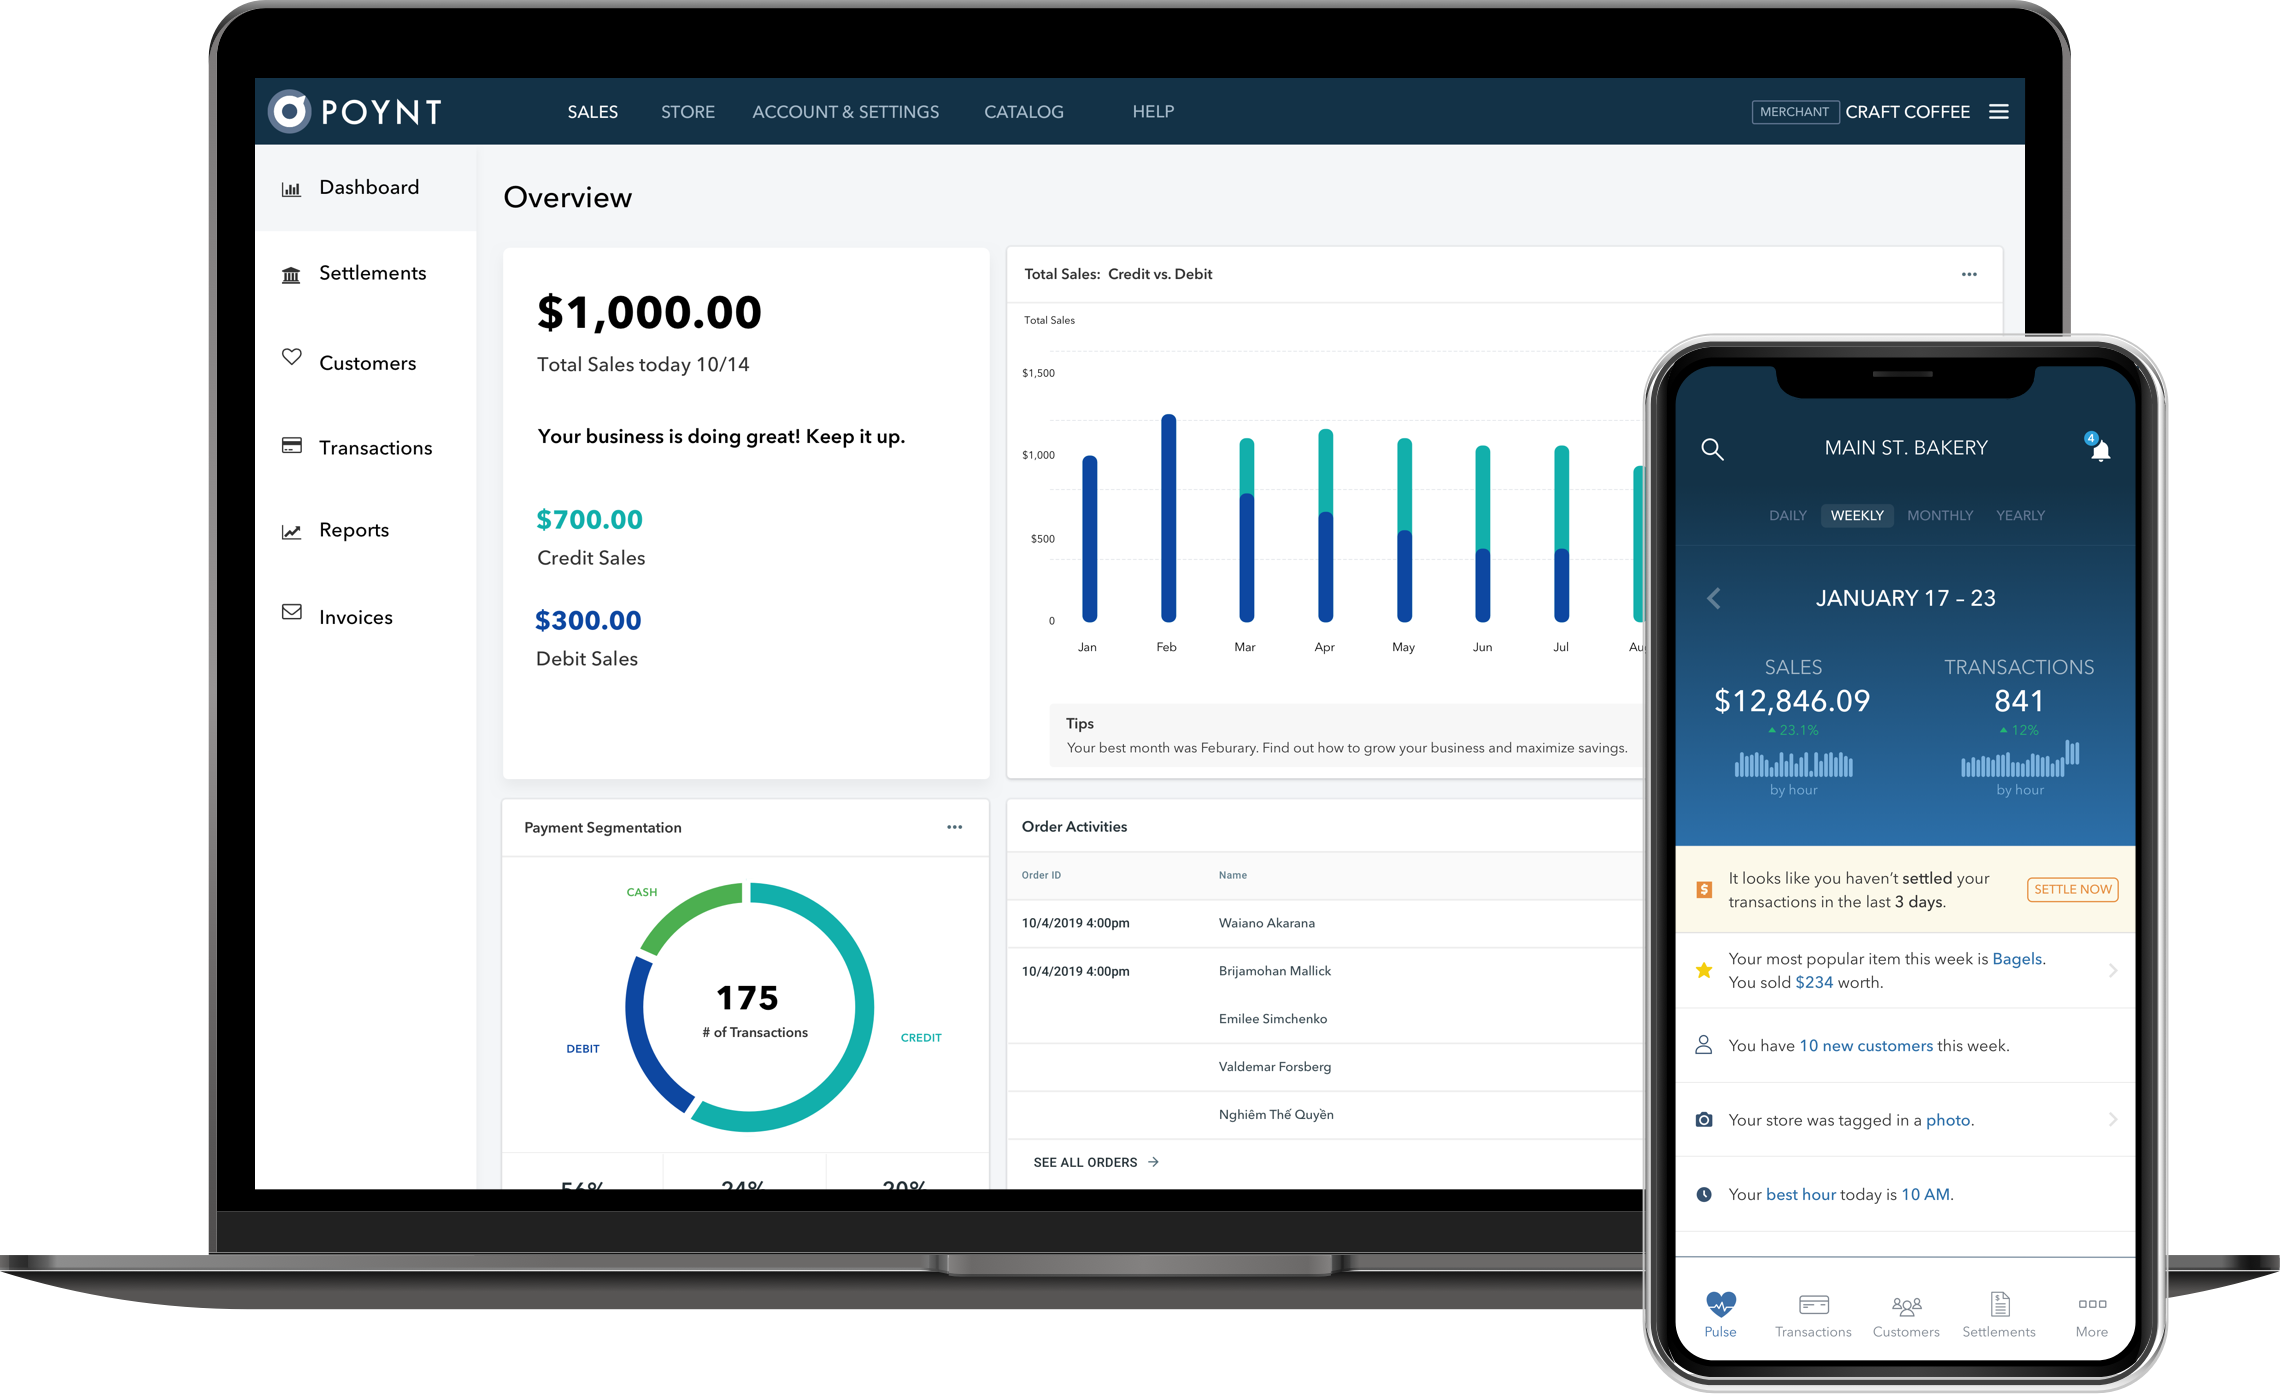 The online HQ for Poynt's payment processing unit